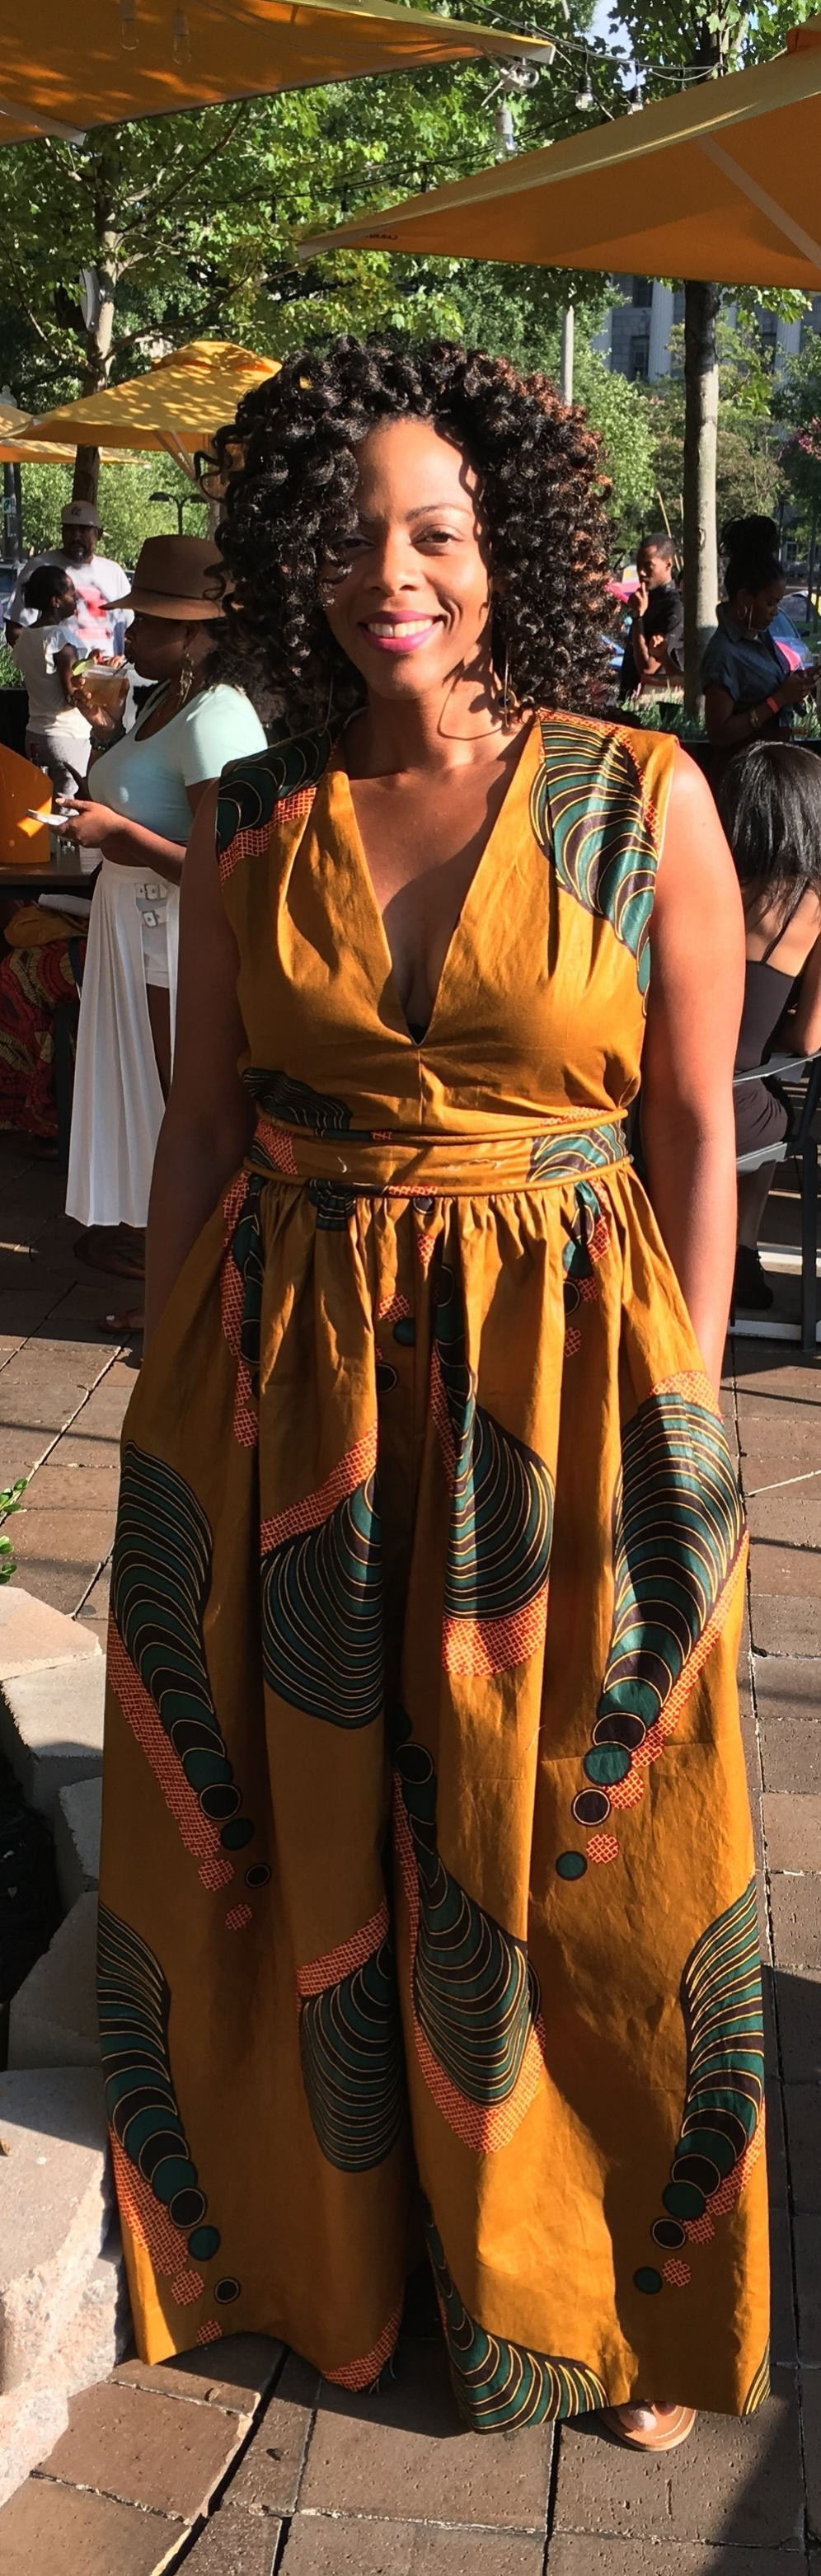 The Ankara Maxi Dress - For the 4th project, I used an ankara wax print to make a maxi dress with a cut-out in the back.  I took the bodice from Simplicity 1059 and made a cut out in the back. The skirt was two long rectangles.  The front had a slit in the center (are you seeing the theme here?).  This was attached to a waistband with piping.  I added pockets to the side.  One huge lesson from this dress: always make sure you have an adequate 'exit plan' for any garment.  As much as I love this dress, it requires an amazing feat of  acrobatics to get into and out of it.   The next time I make something like this, I will definitely be more thoughtful about the zipper length and placement.